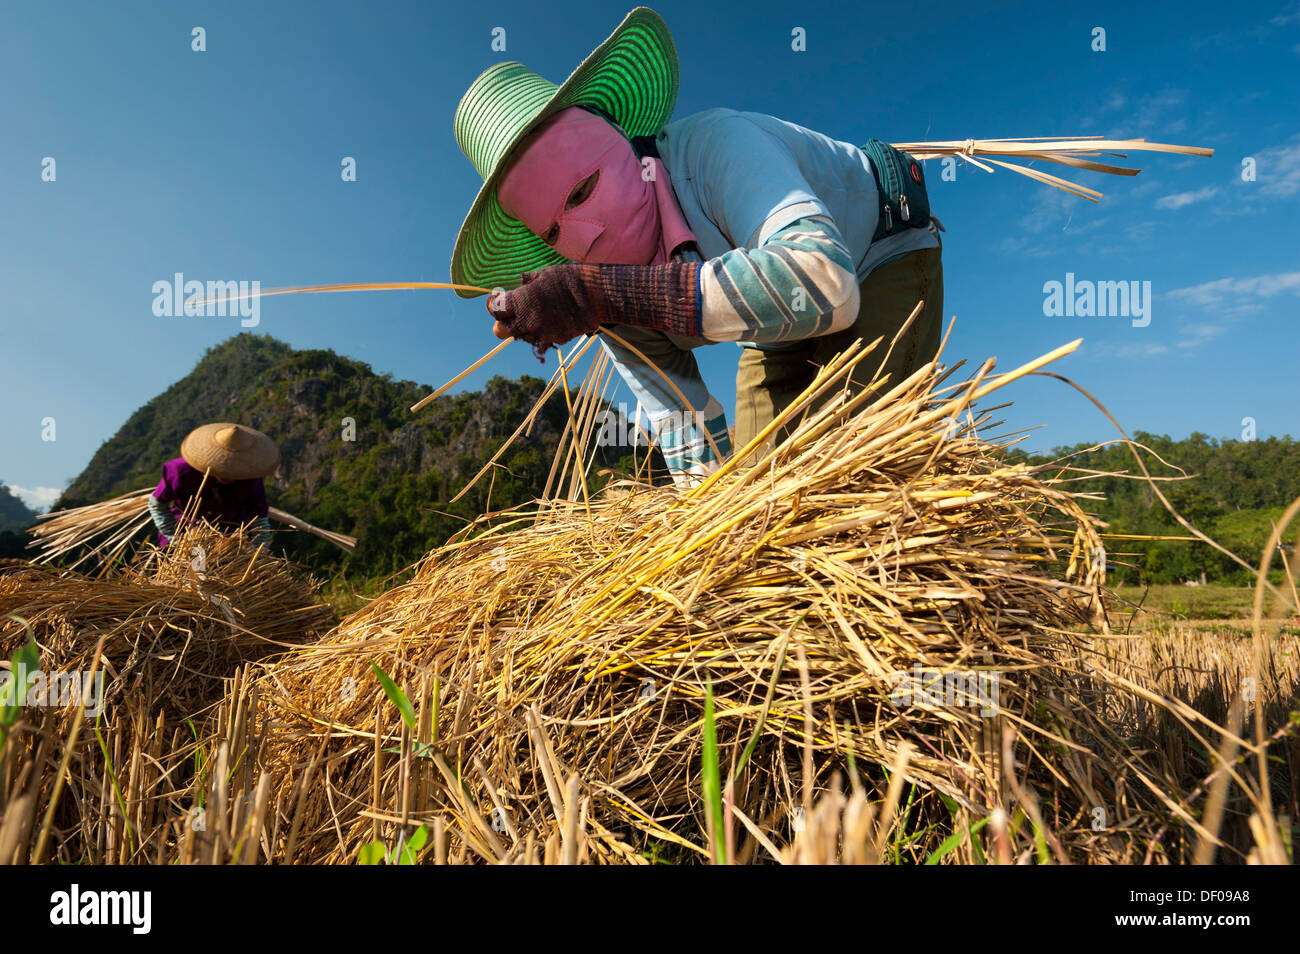 Women wearing masks from the Shan or Thai Yai ethnic minority making straw bundles, field work, harvested rice paddy - Stock Image